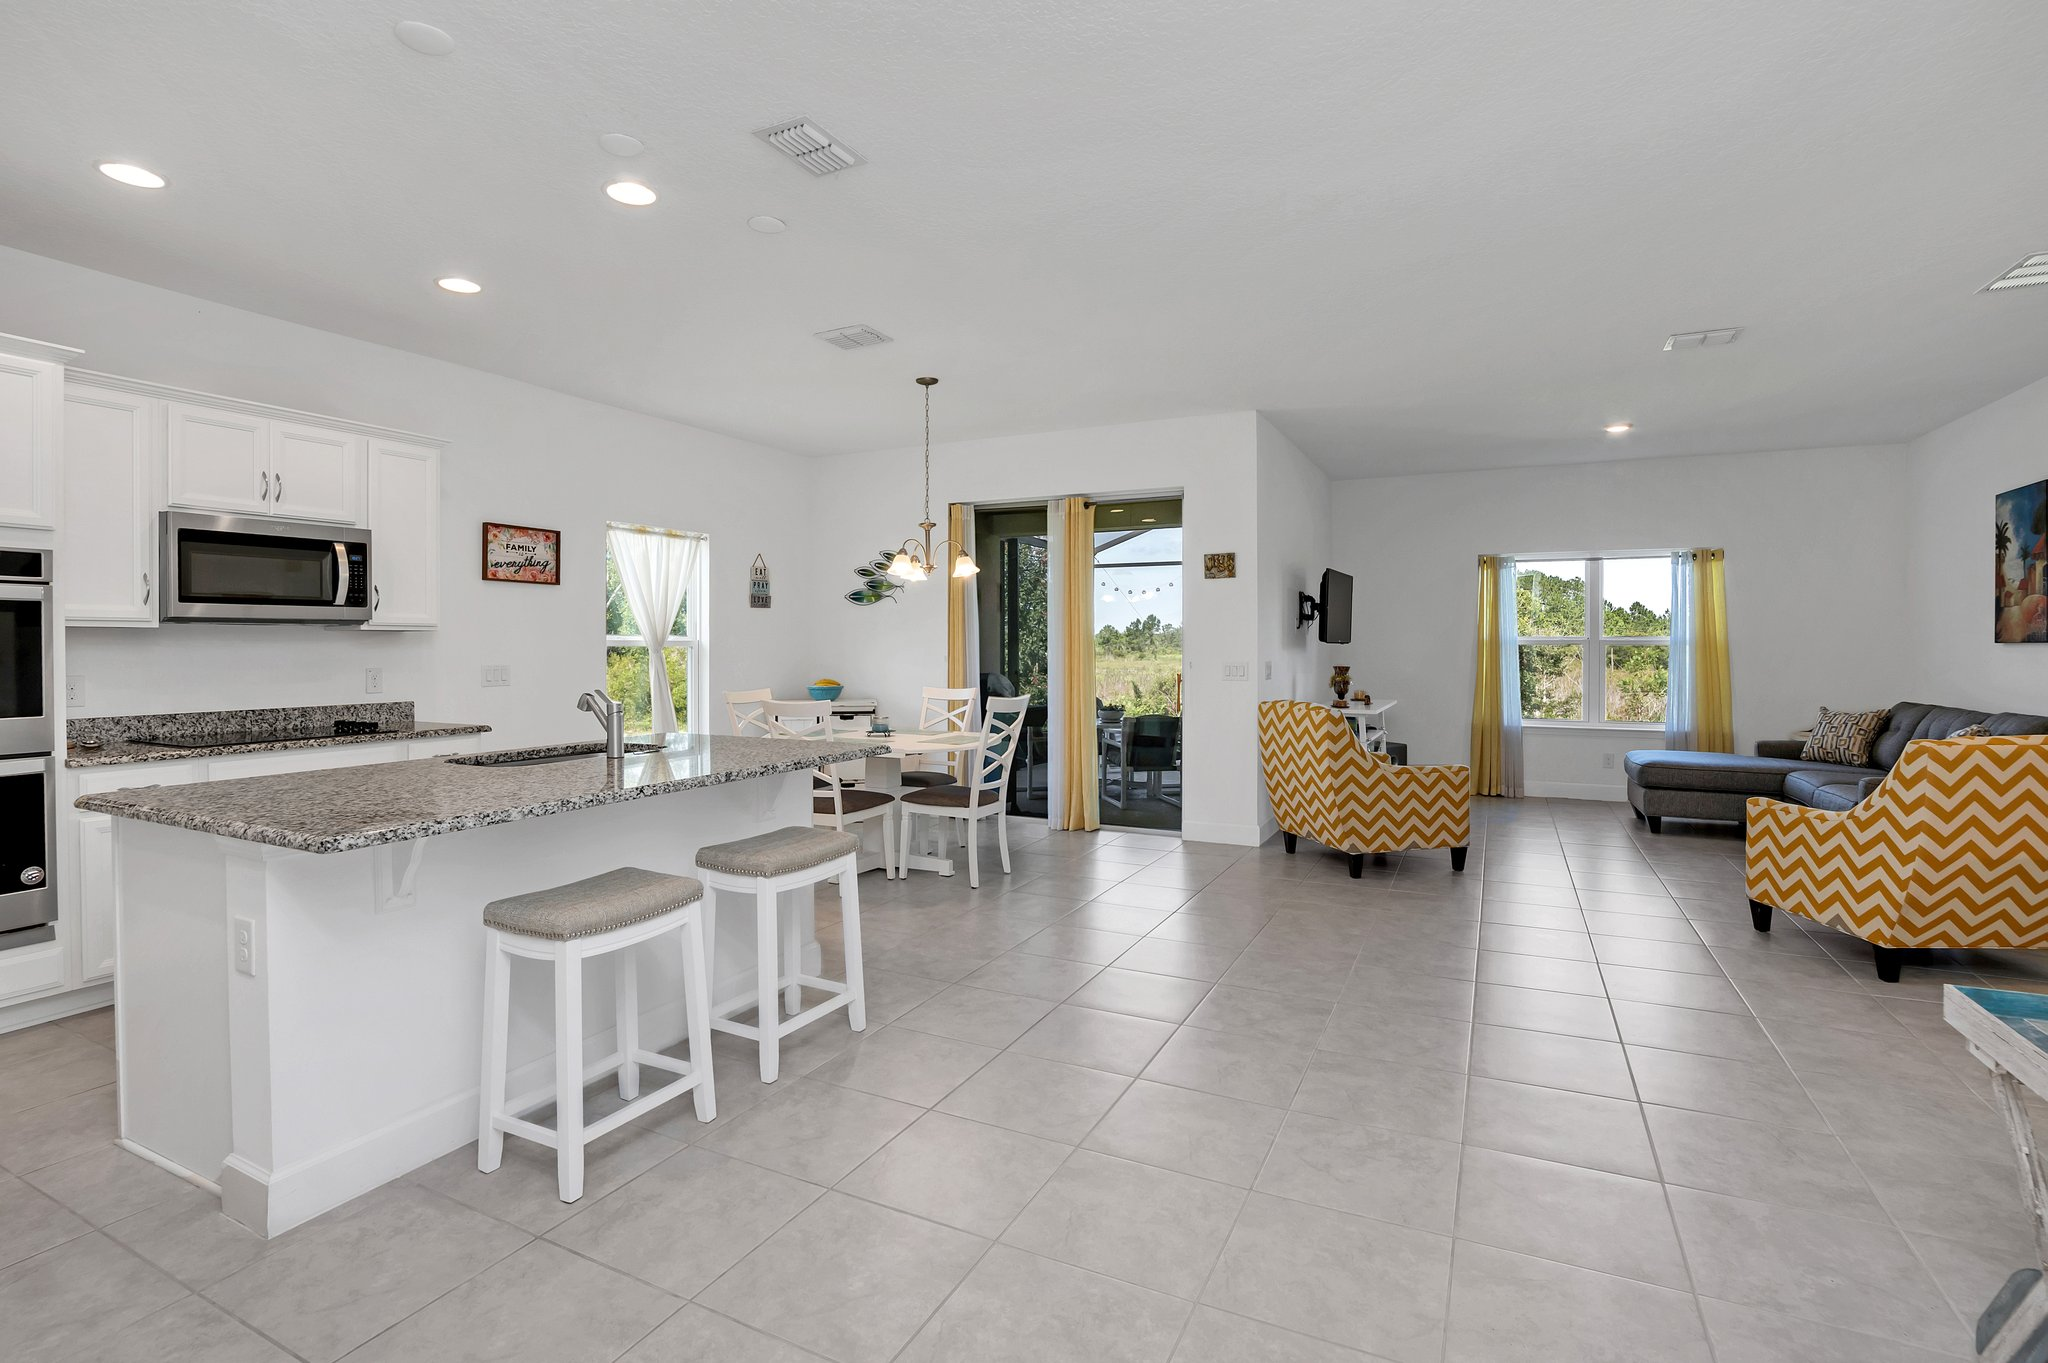 531 Bellissimo Pl, Howey-In-The-Hills, FL 34737, USA Photo 6